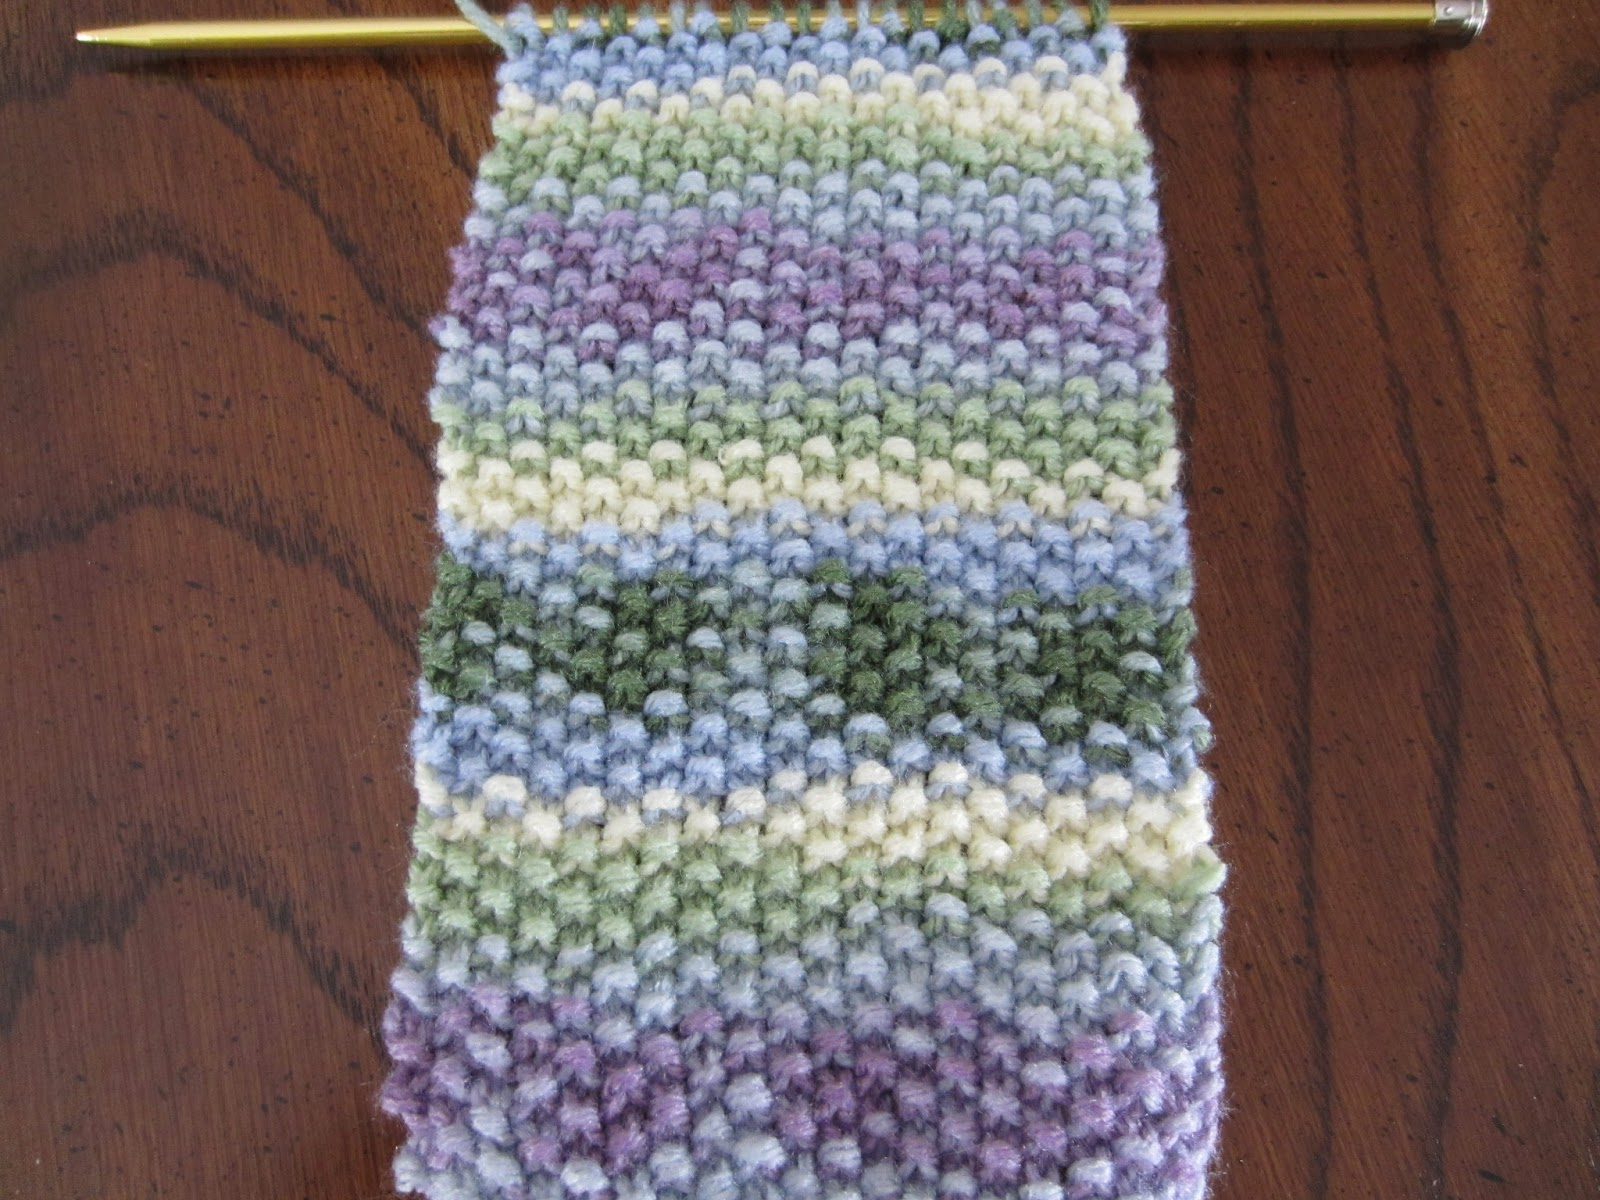 Knitting Casting Off Seed Stitch : My Patchwork Quilt: A NEW SCARF FOR SADIE-SEED STITCH